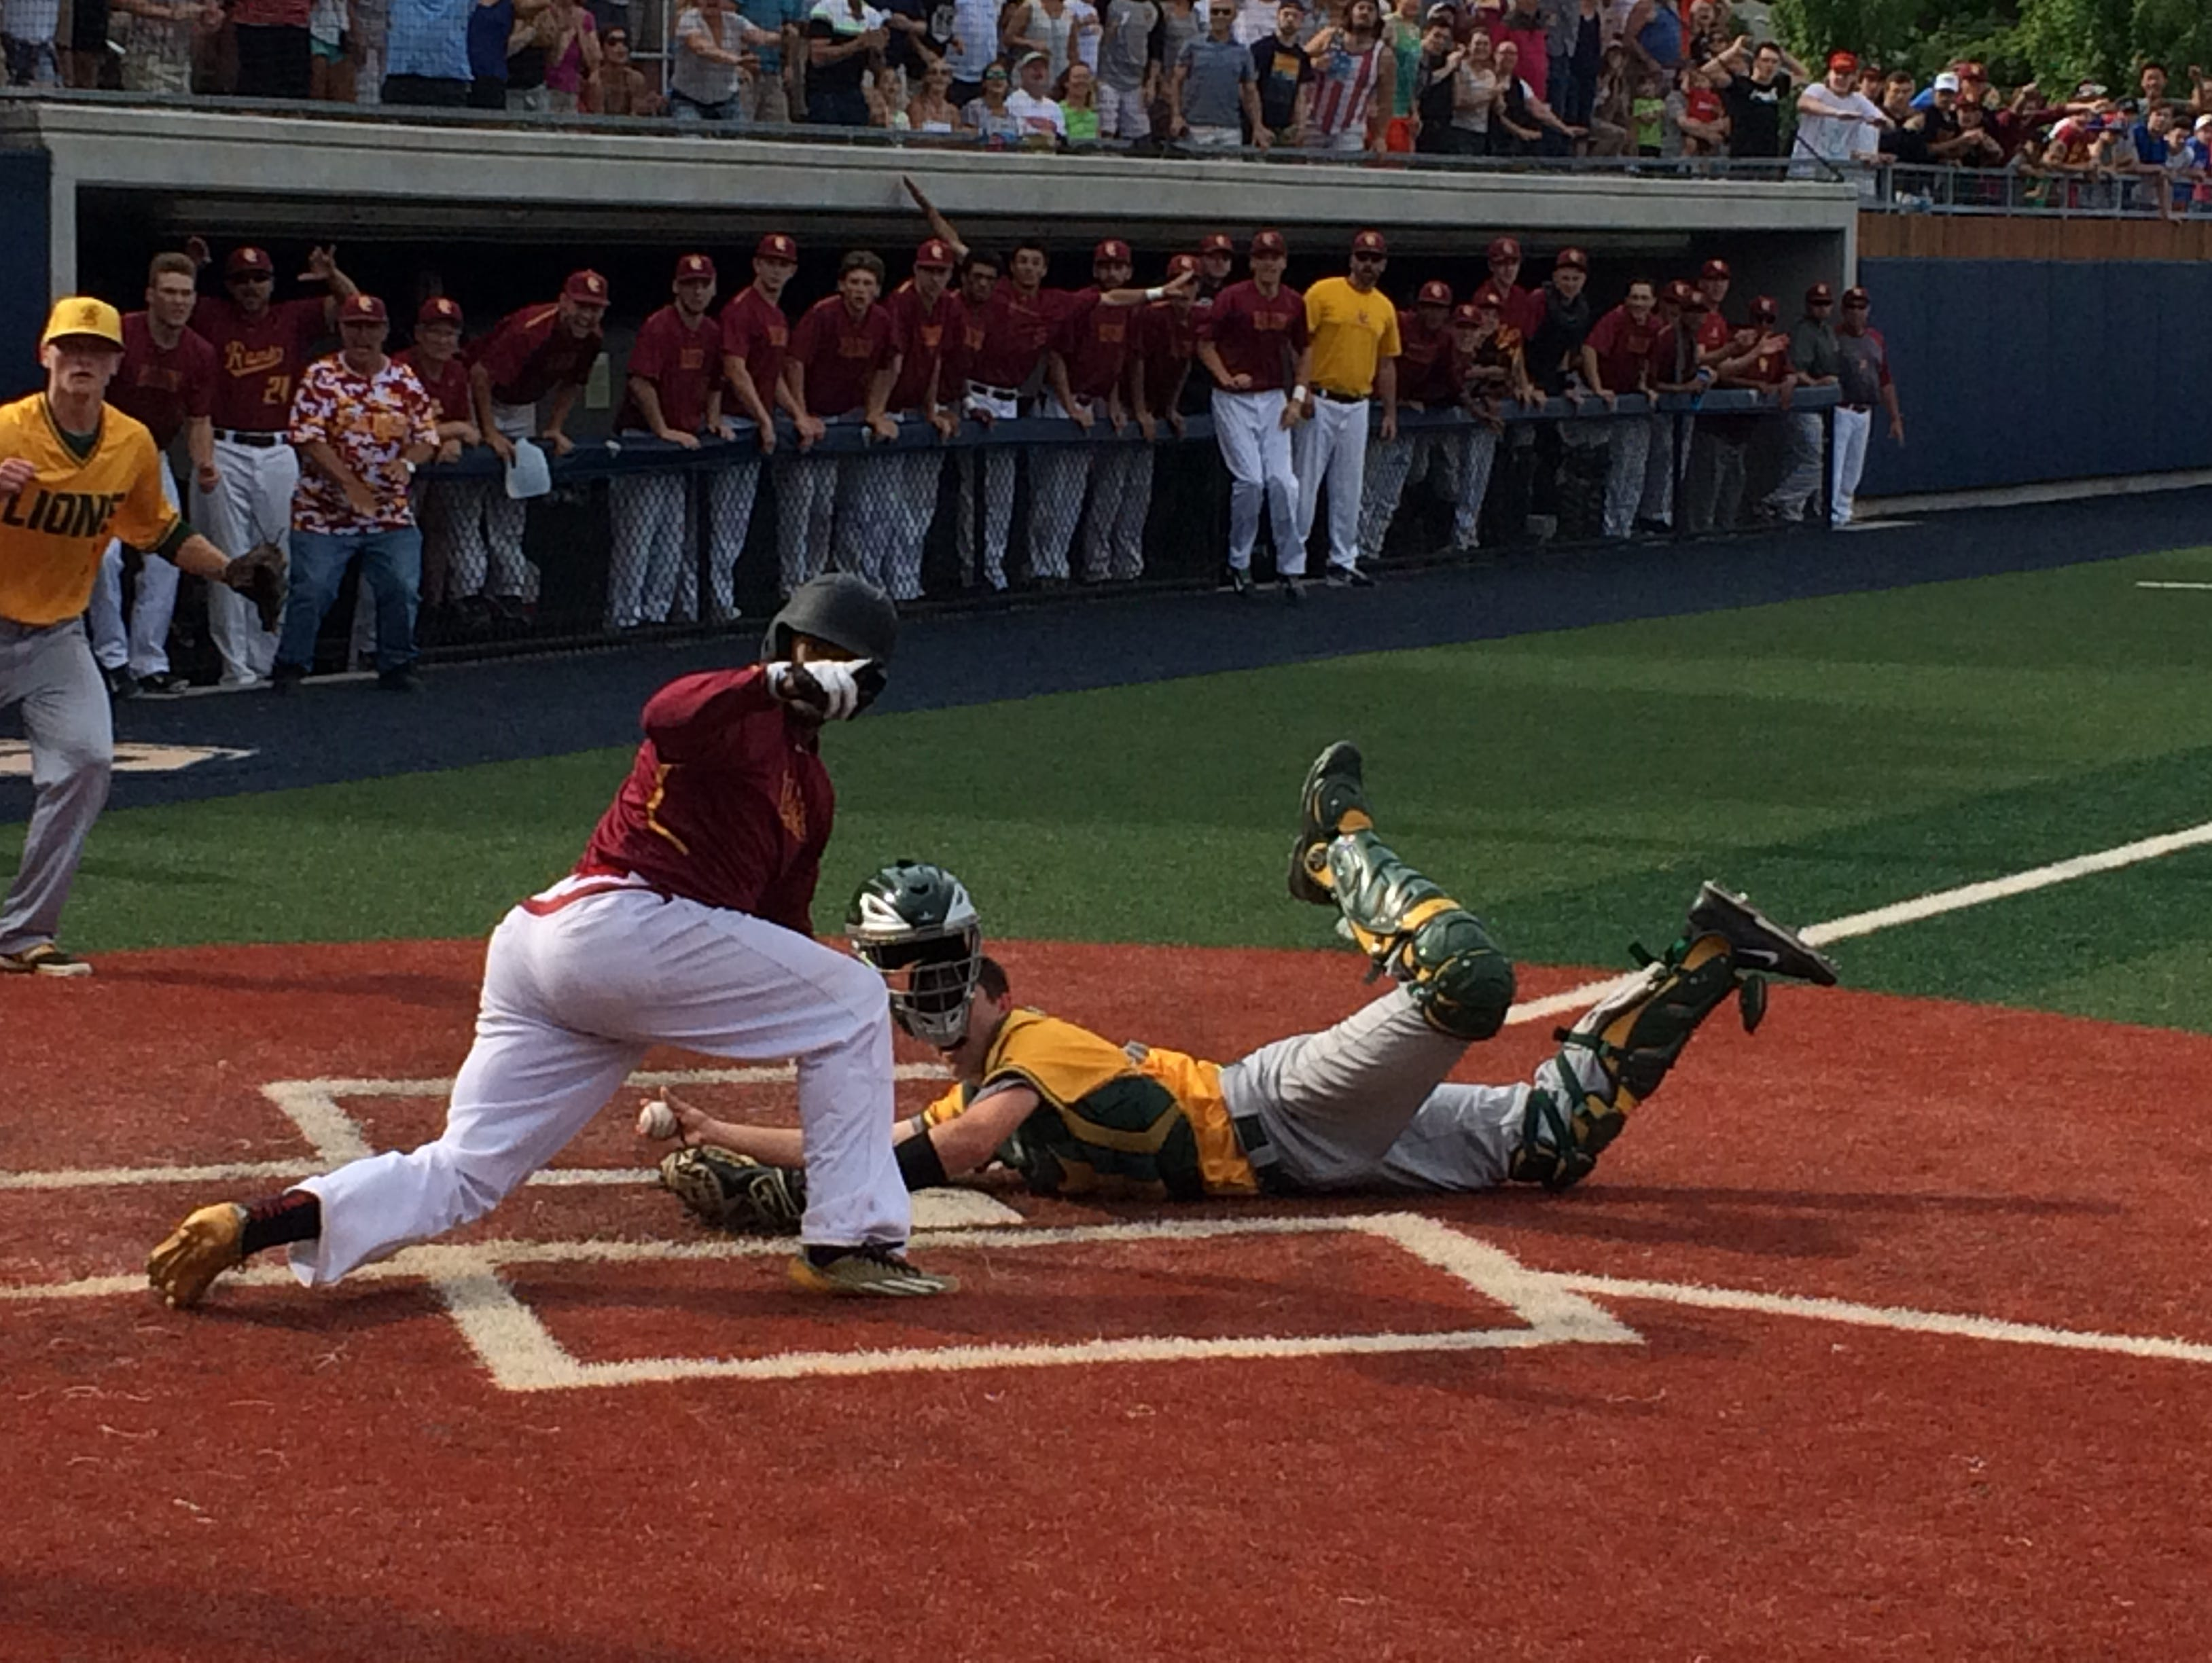 Central Catholic's Tyson Cooper just beats the tag for an inside the park home run against West Linn.